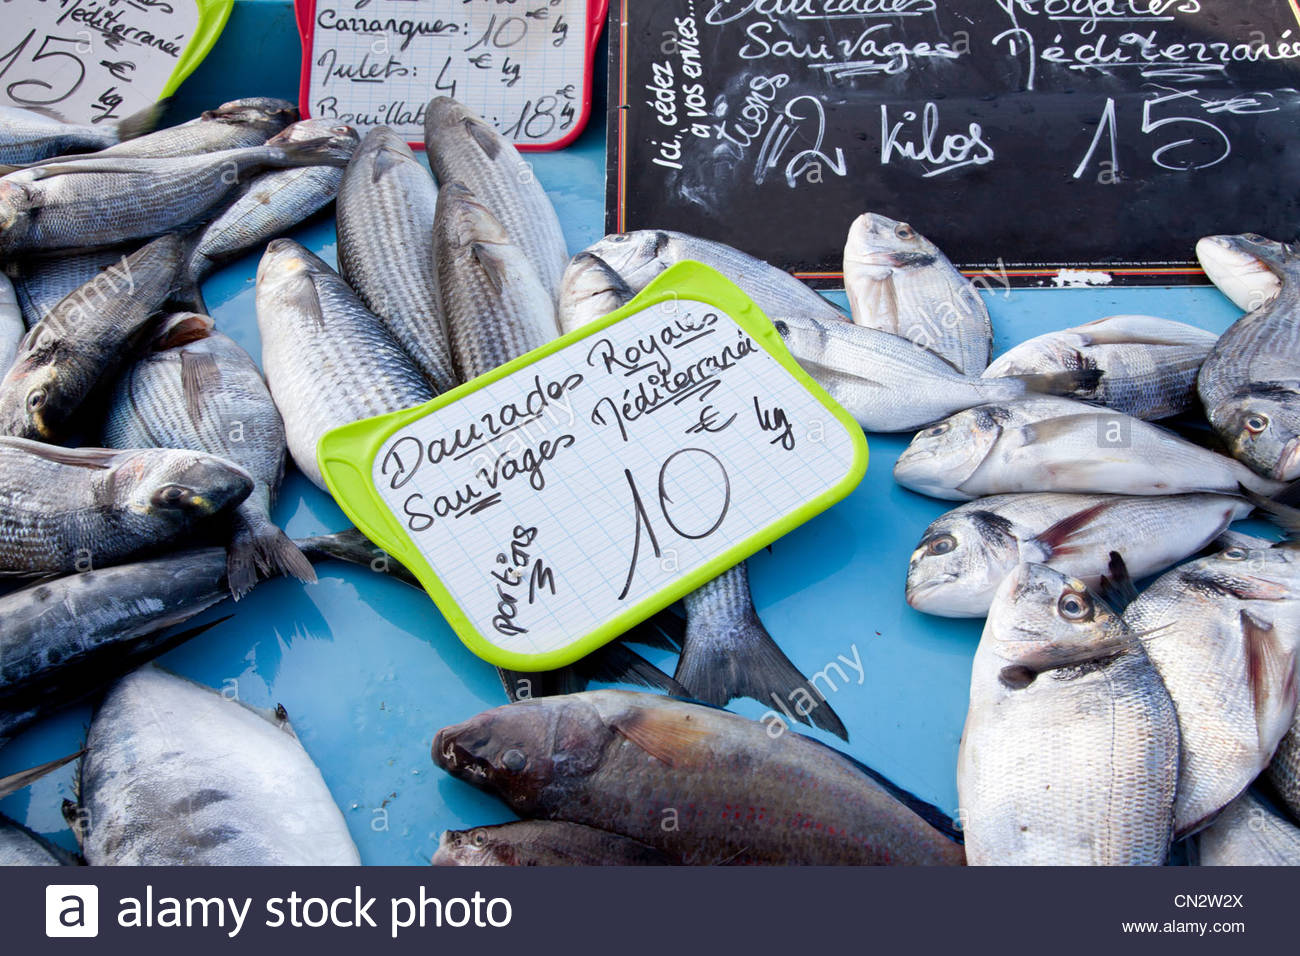 Fresh fish for sale in market - Stock Image